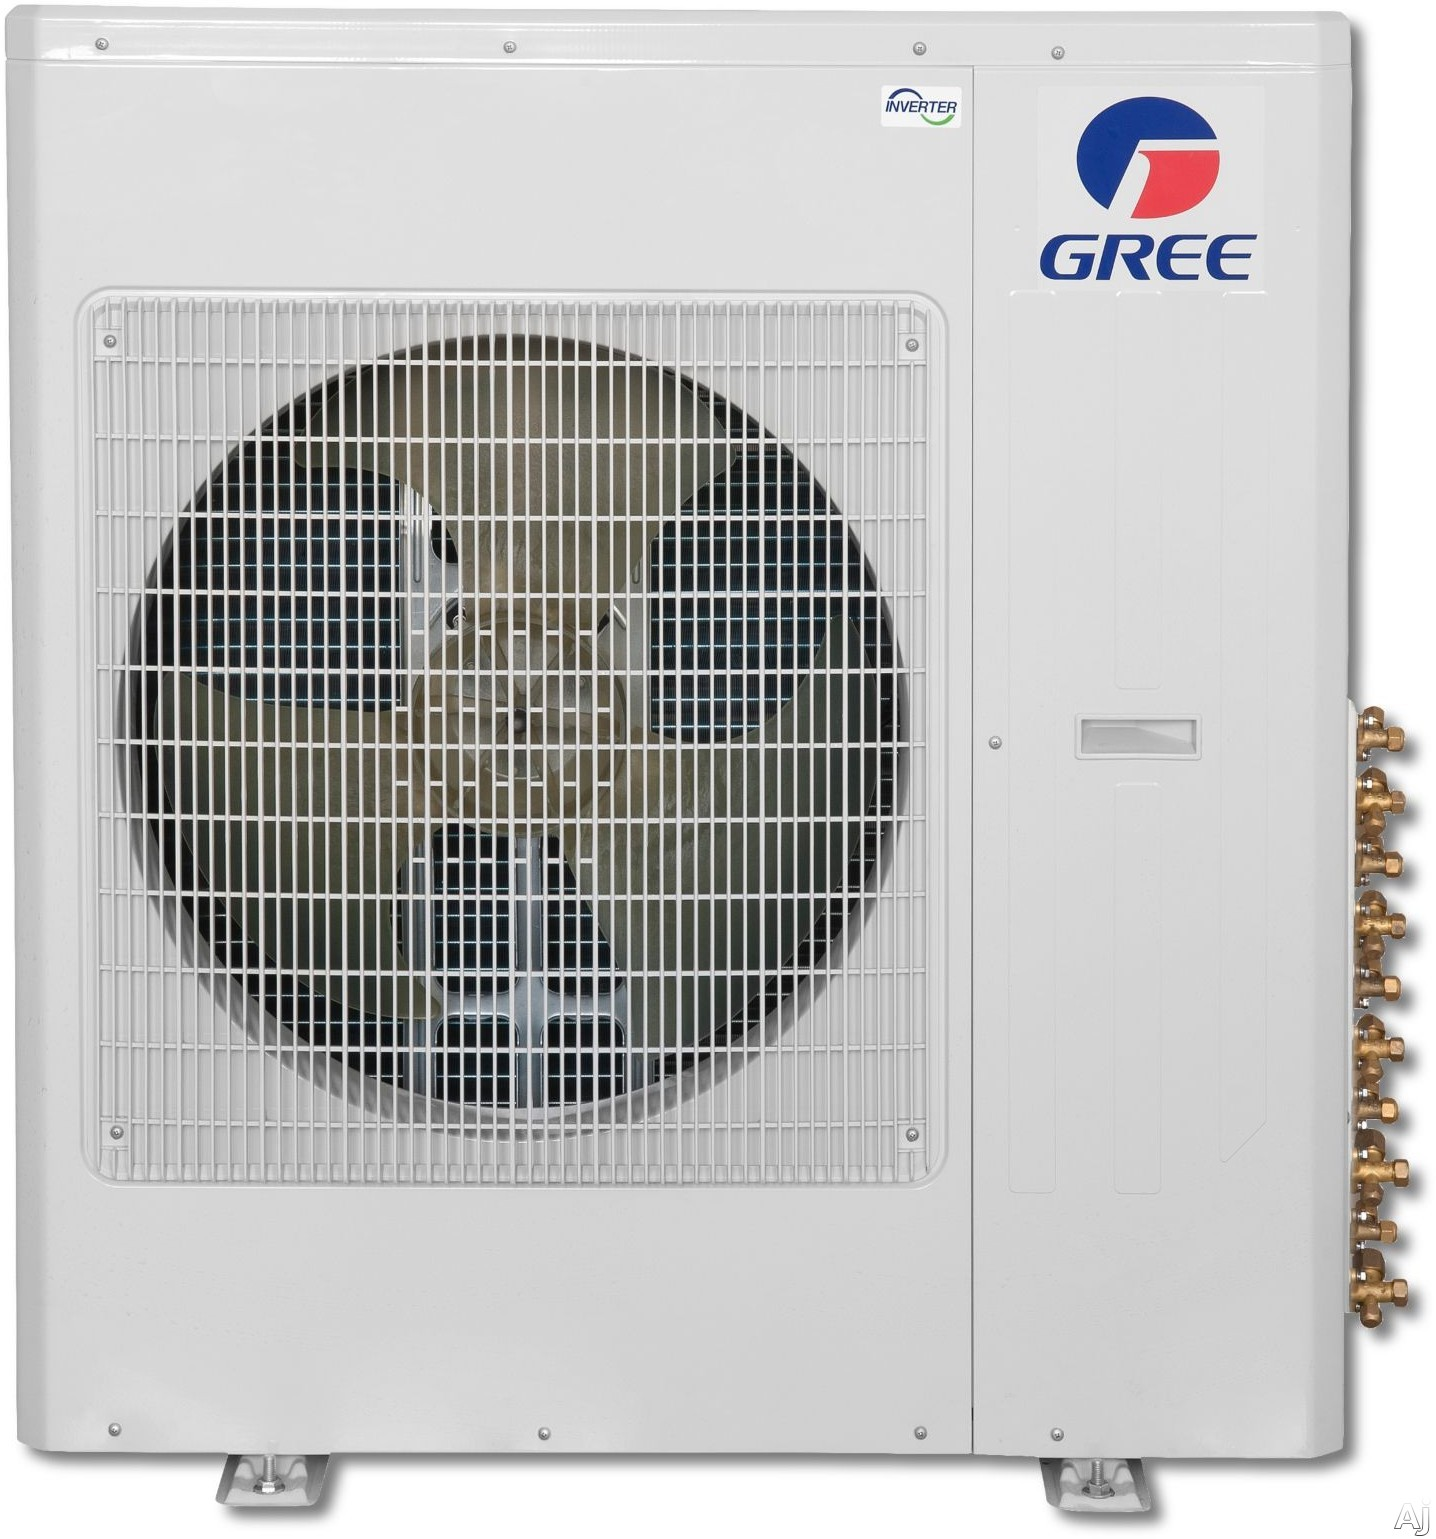 Gree Multi Series MULTI36HP230V1AO 34,000 BTU Multi-Zone Mini-Split Outdoor Air Conditioner with 35,800 BTU Heating Capacity, 2,177 CFM Air Flow, Low Ambient Operation, DC Inverter Technology, Intelligent Defrost, Gold Fin Coil Coating and Auto Restart M